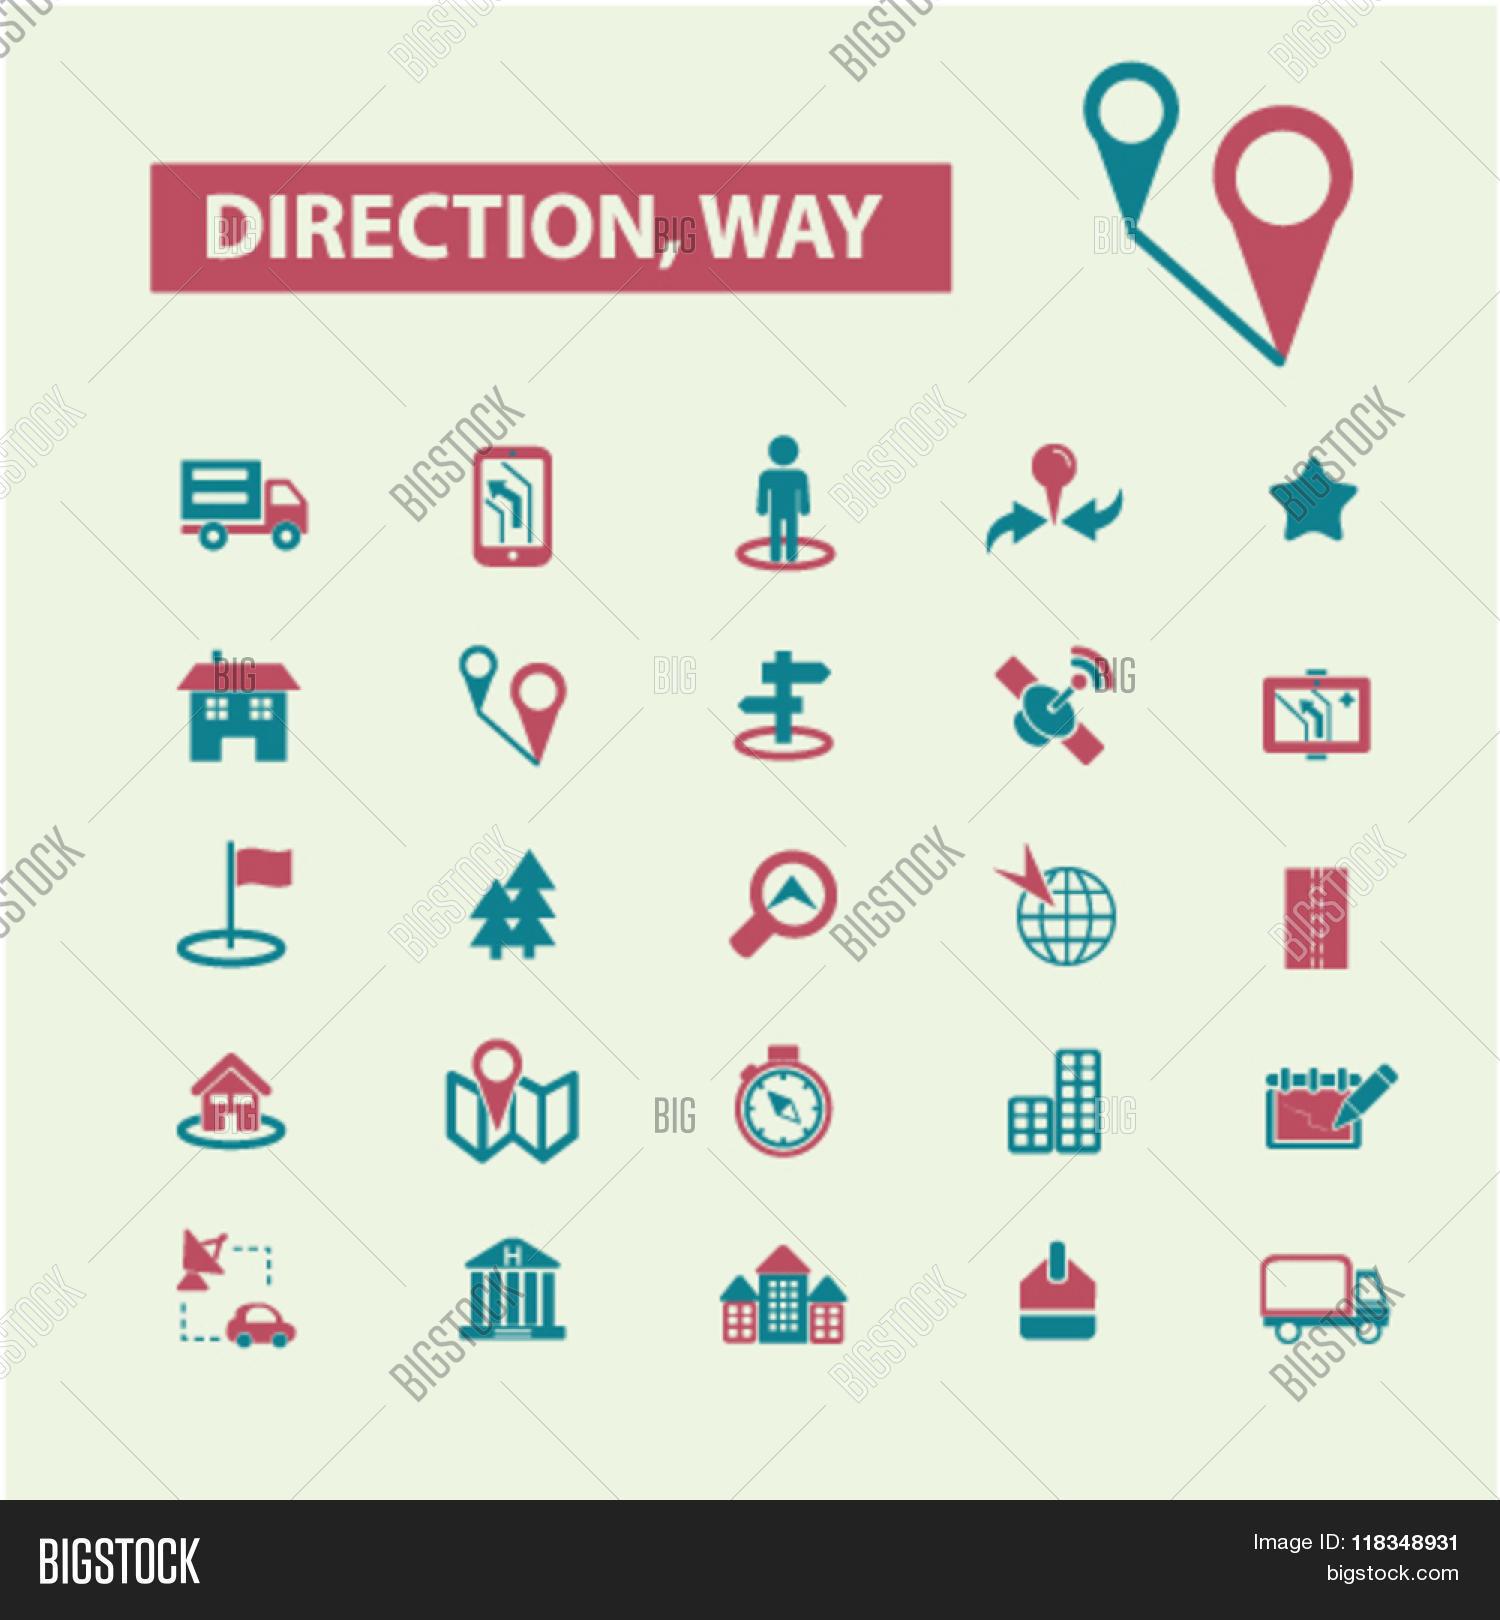 Direction Icons, Way Vector & Photo (Free Trial) | Bigstock on links icon, mapquest desktop icon, schedule icon, contact icon, emergency desktop icon, map directional arrows, about us icon, maps app icon, data mapping icon, right icon, apple maps icon, map icons clip art, private party icon,